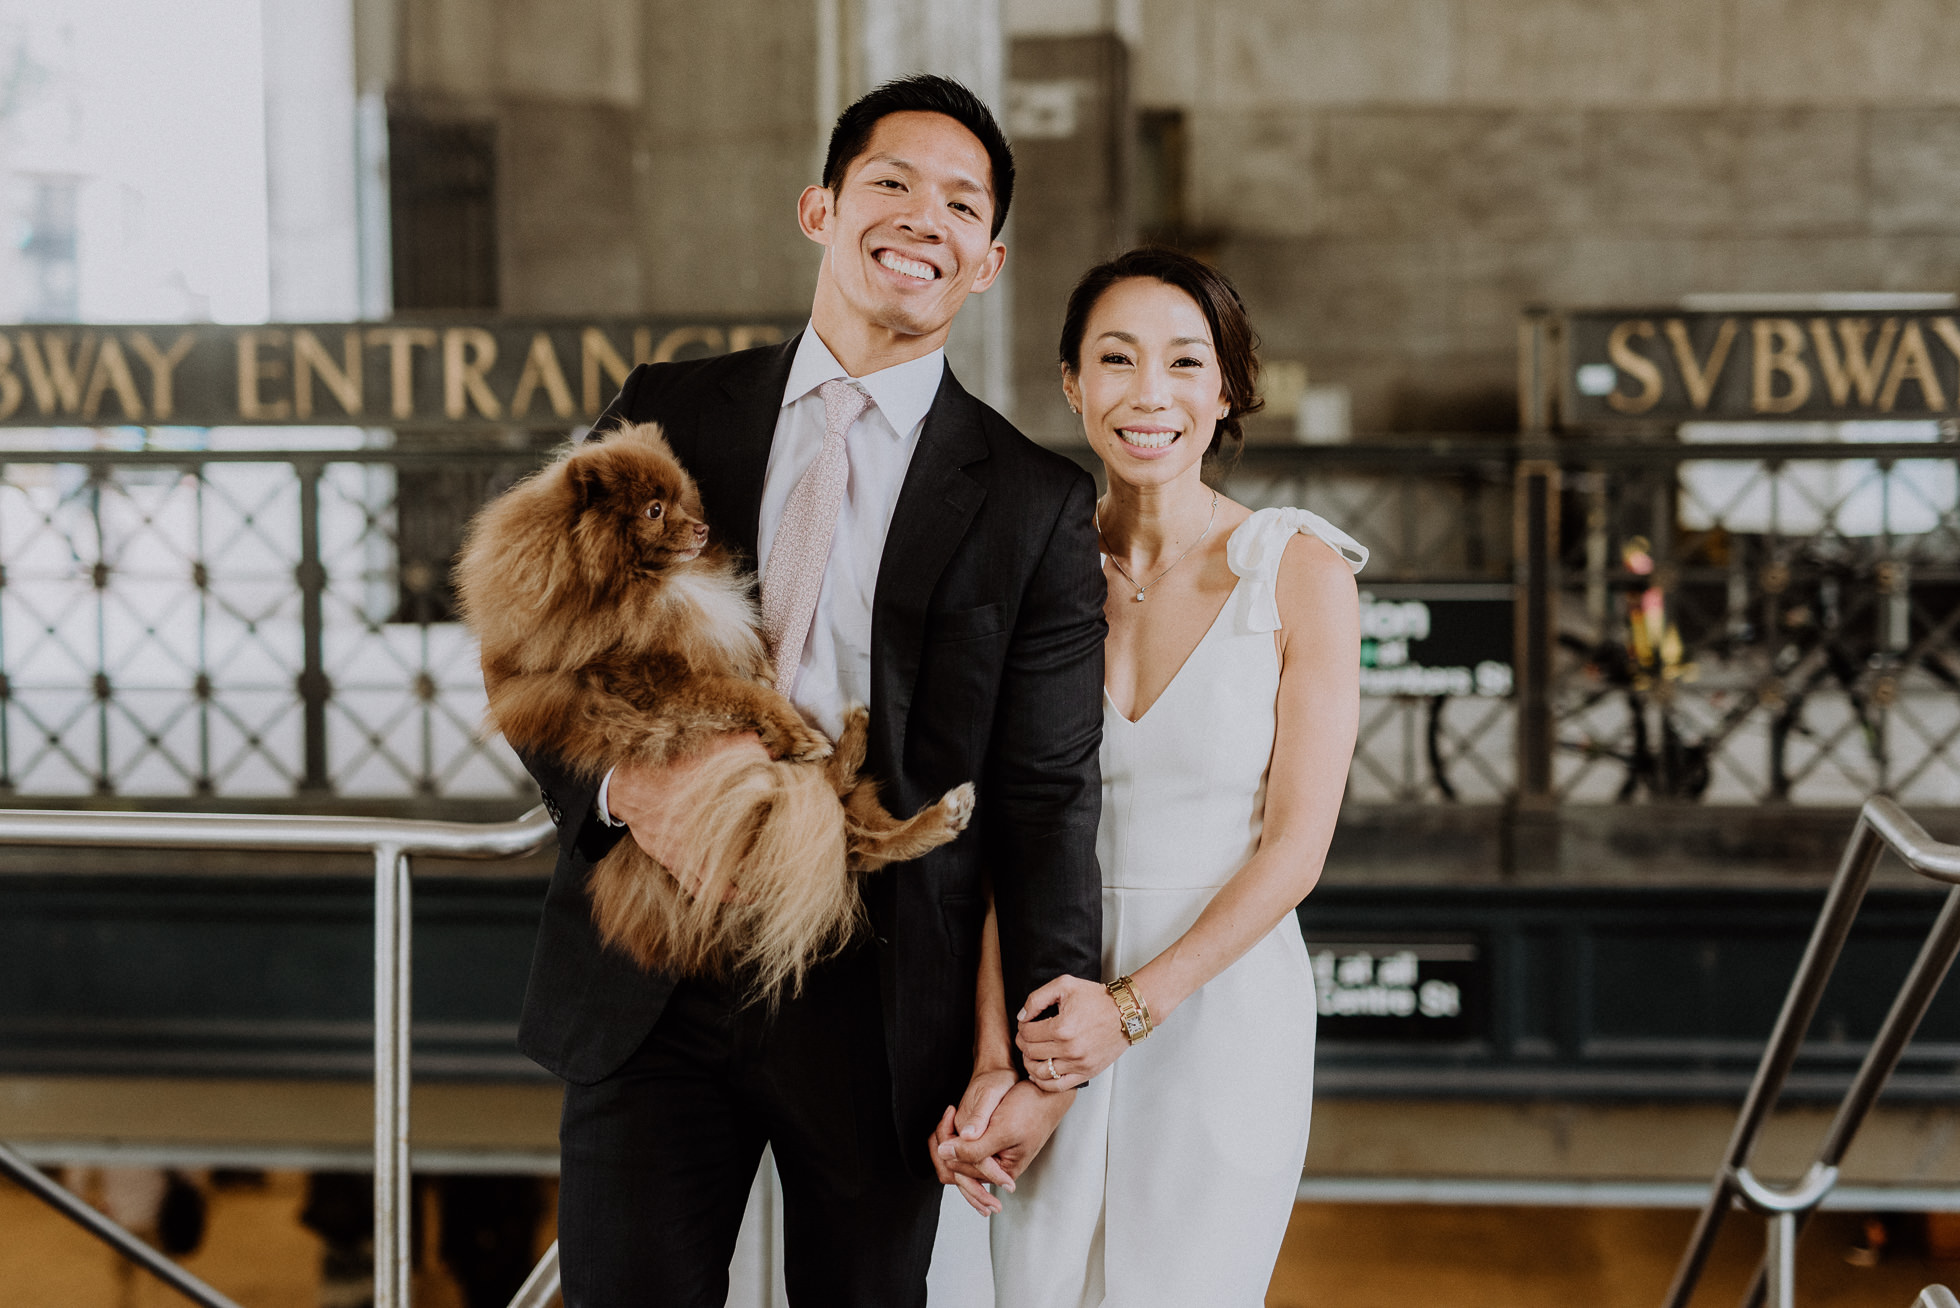 bride and groom with dog in subway